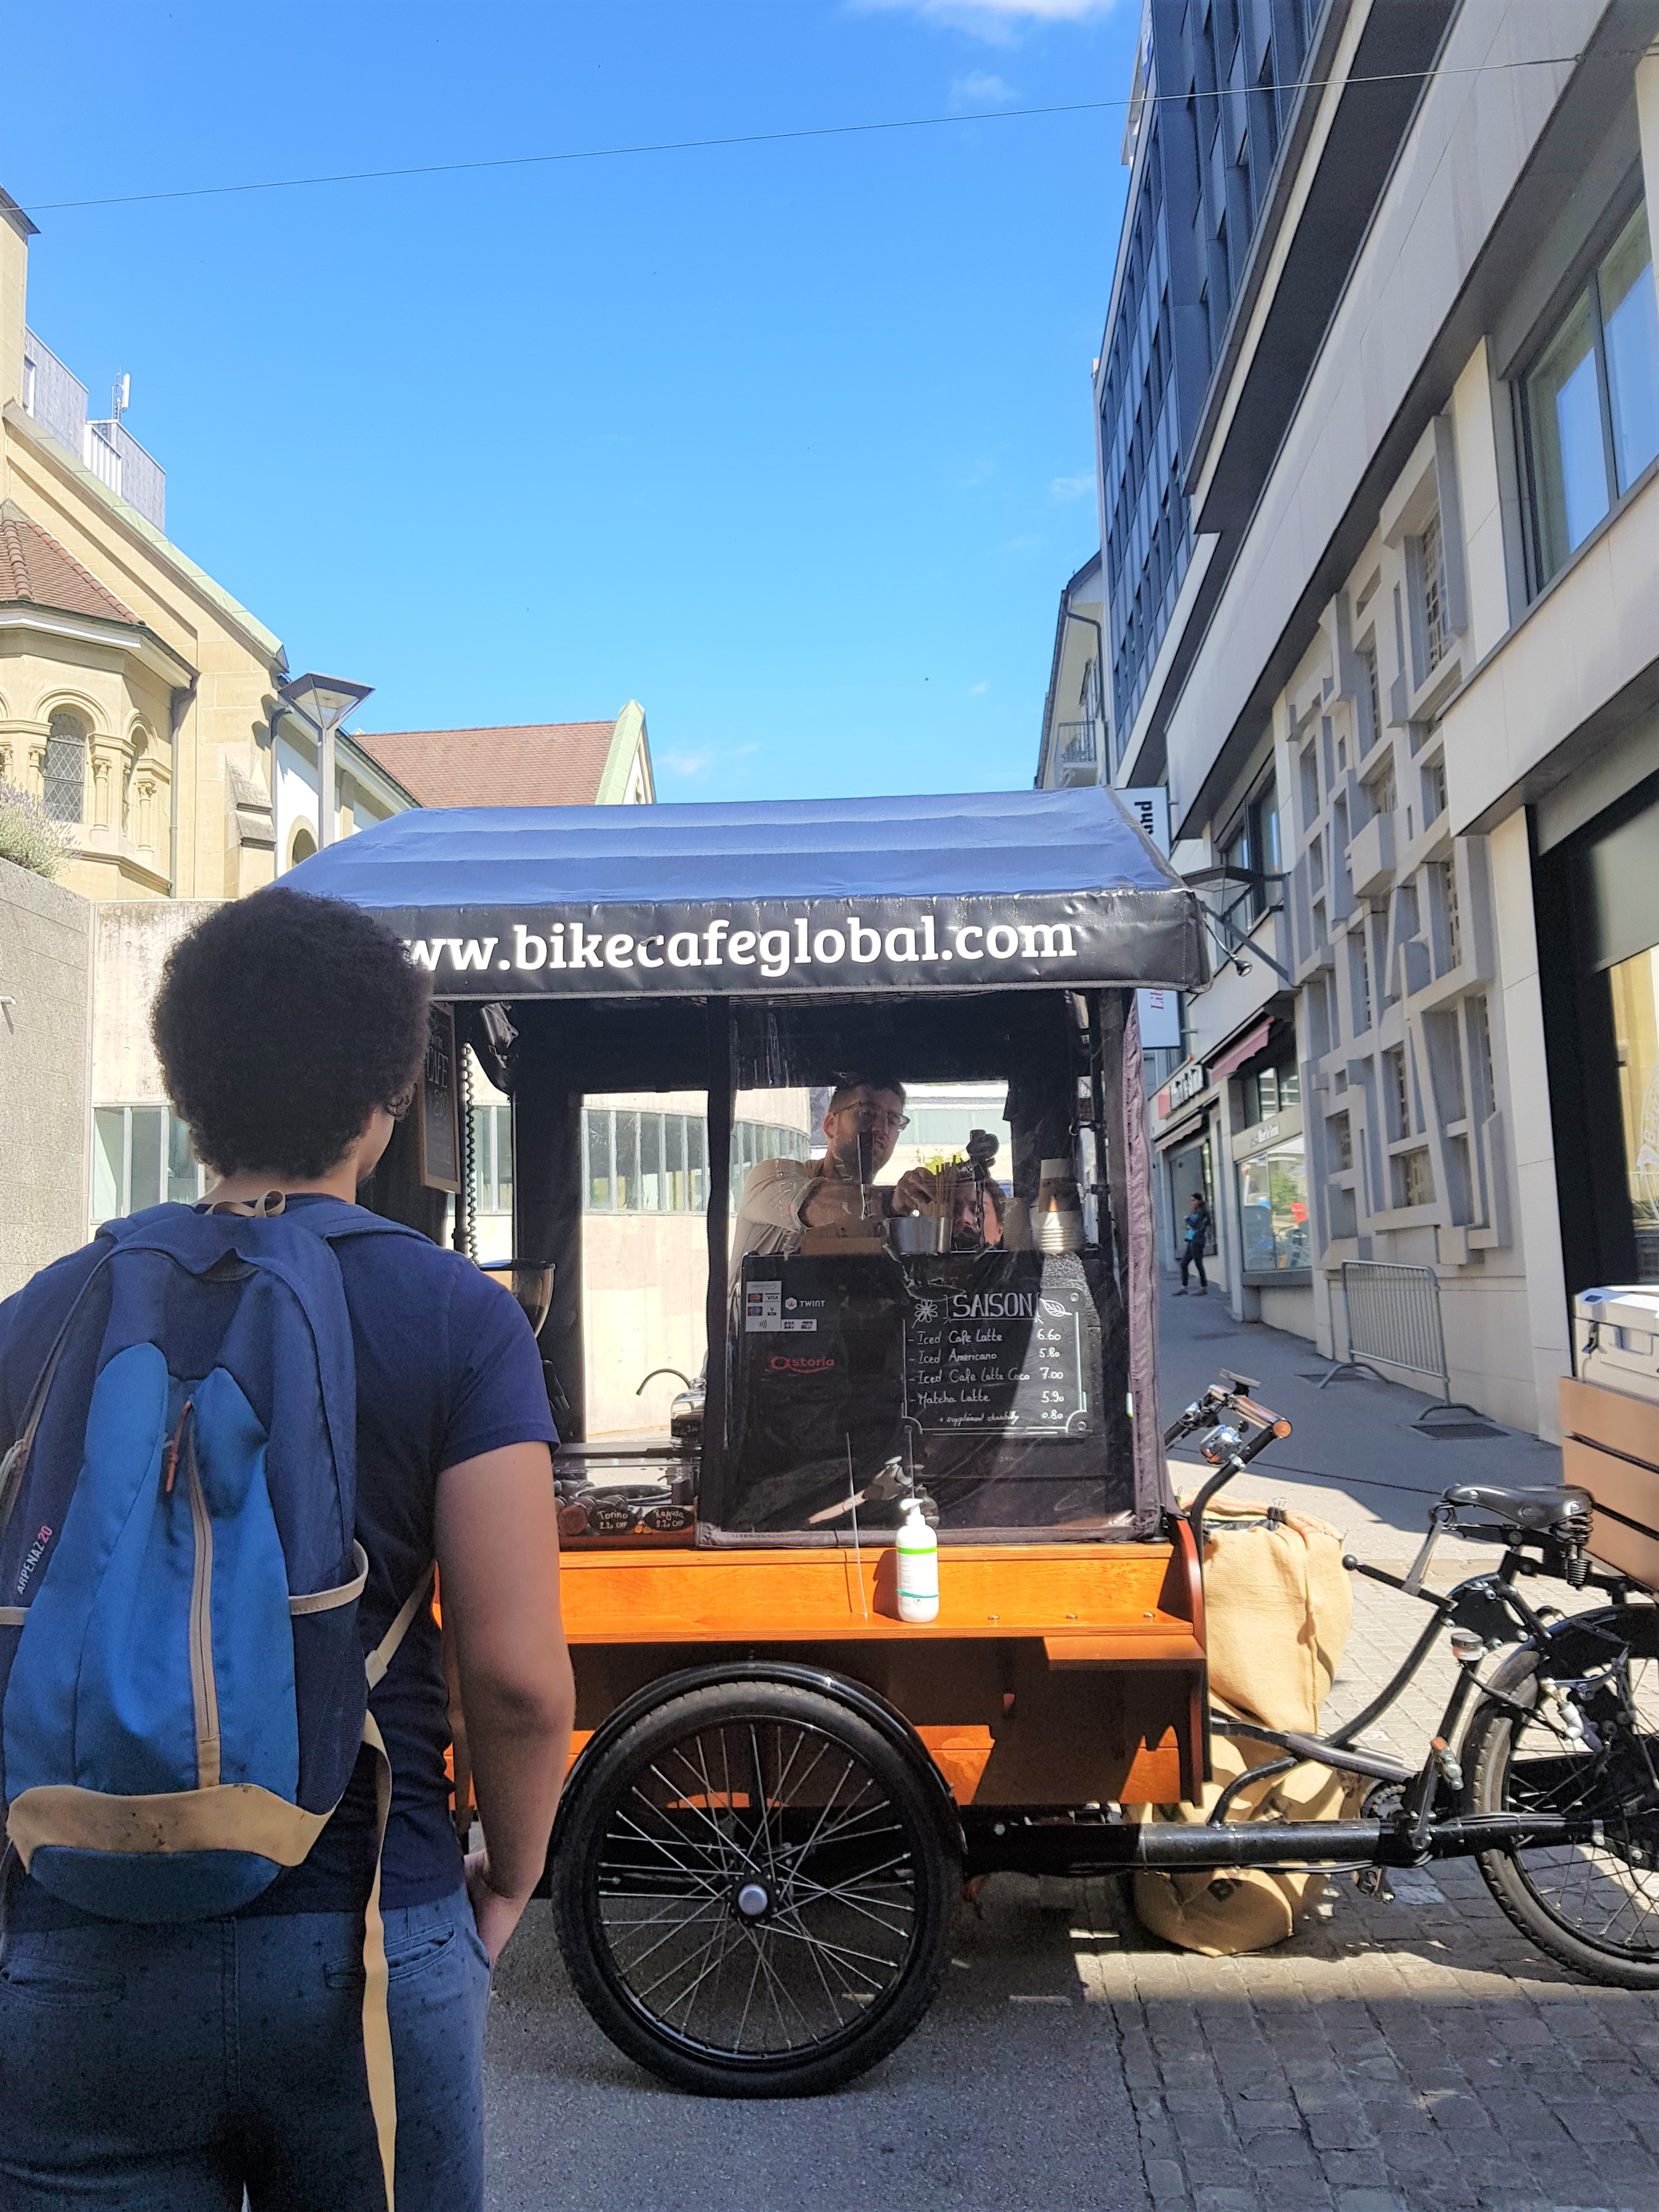 Fribourg bike café global clioandco blog voyage